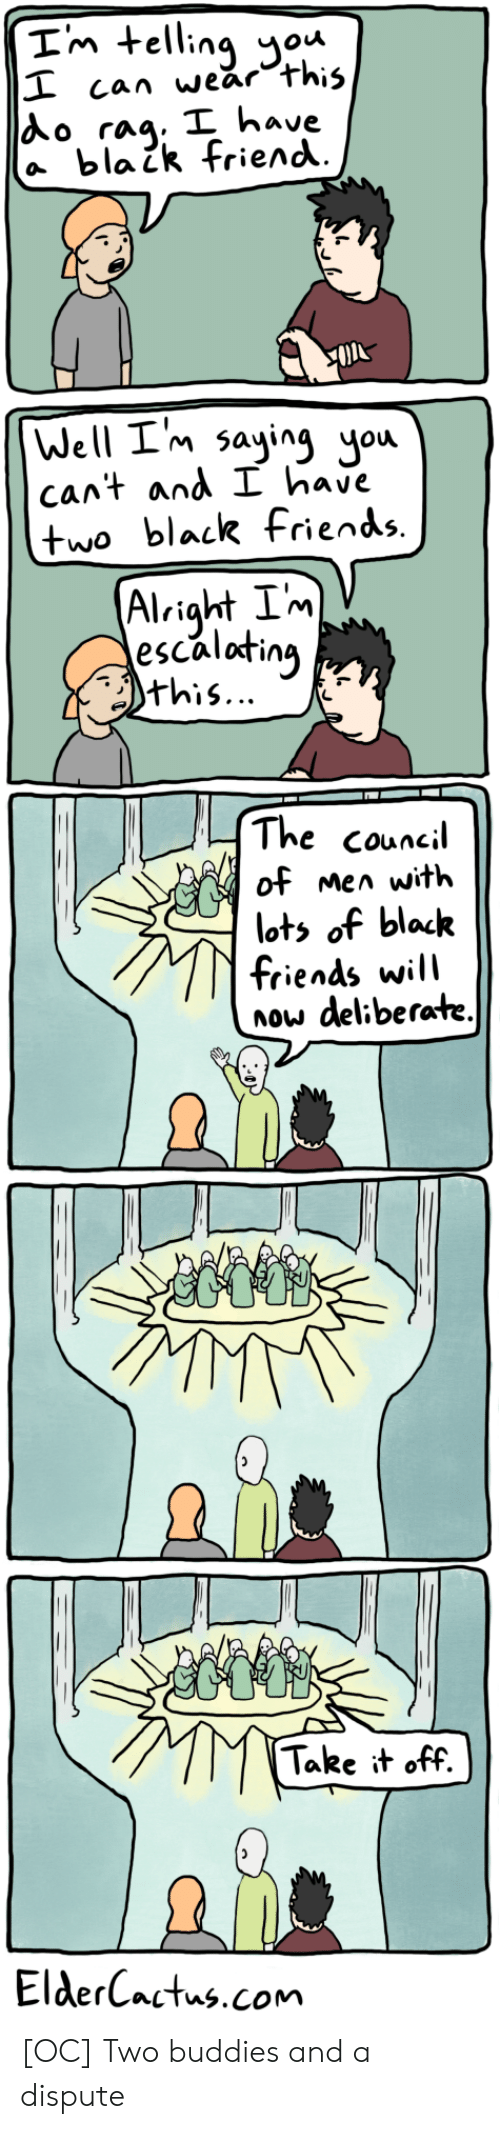 Will Now: Im telling ou  I can wear this  Ao rag. I have  a blaik friend  Well I'm saying you  cant and I have  two black fiends.  Alright Im  escalating  this...  The council  of men with  lots of black  friends will  now deliberate.  Take it off.  ElderCactus.com [OC] Two buddies and a dispute